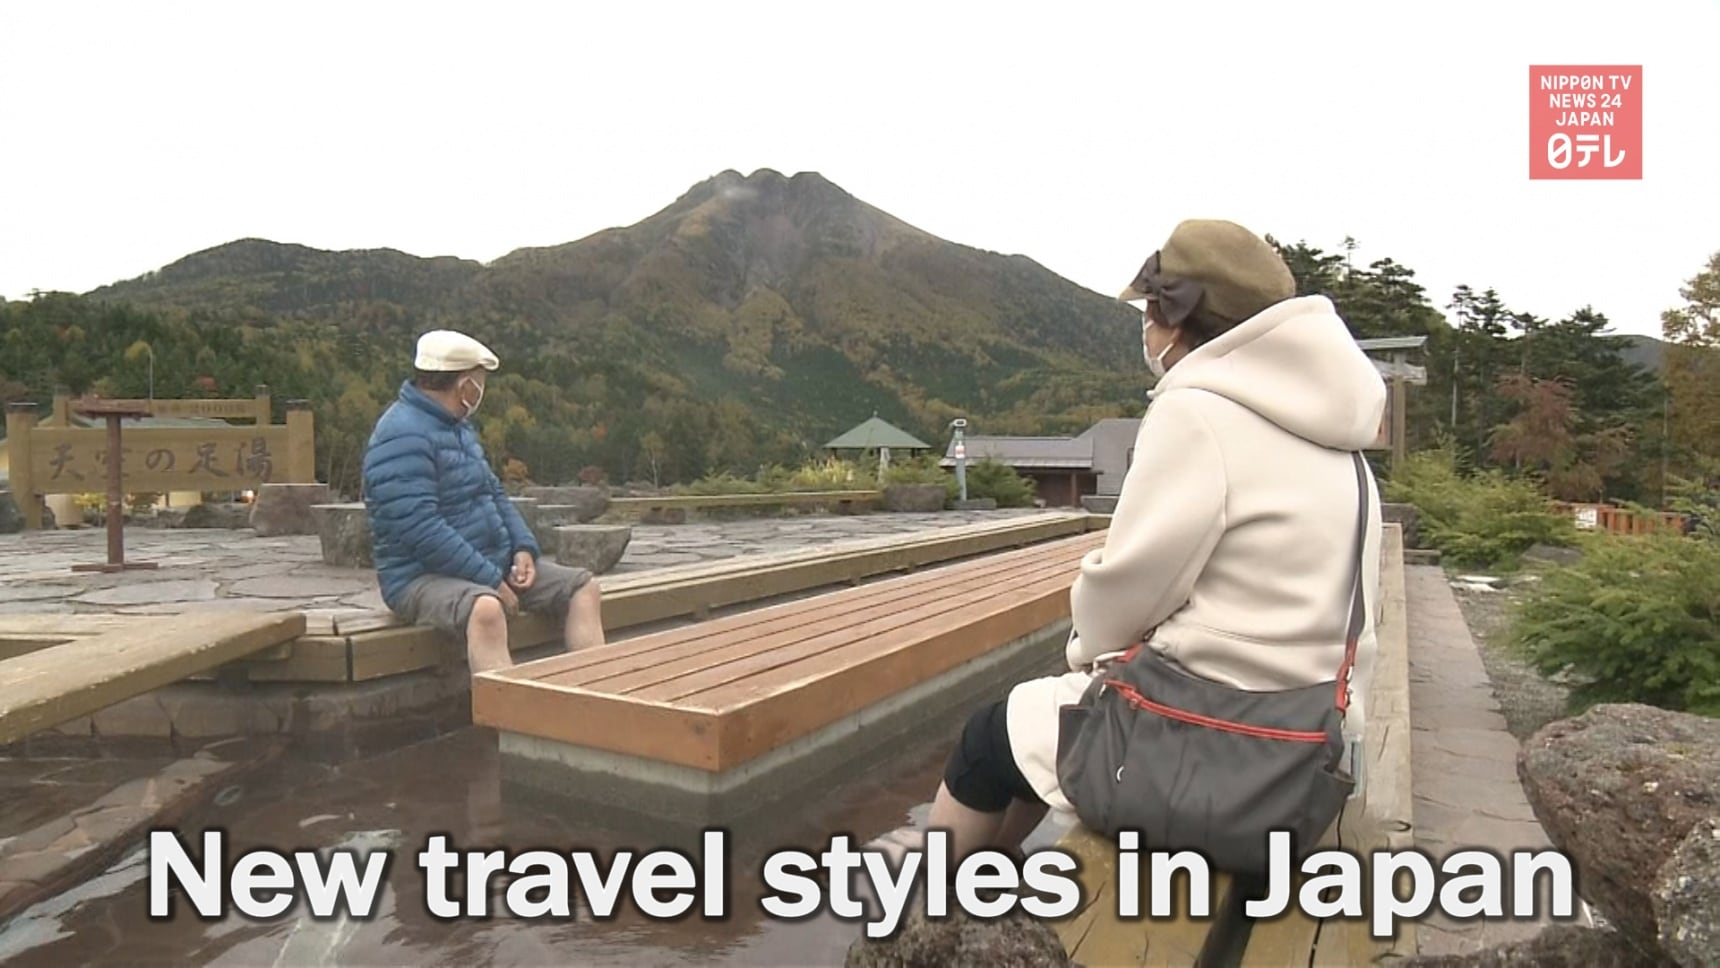 Travel Styles Are Changing Across Japan